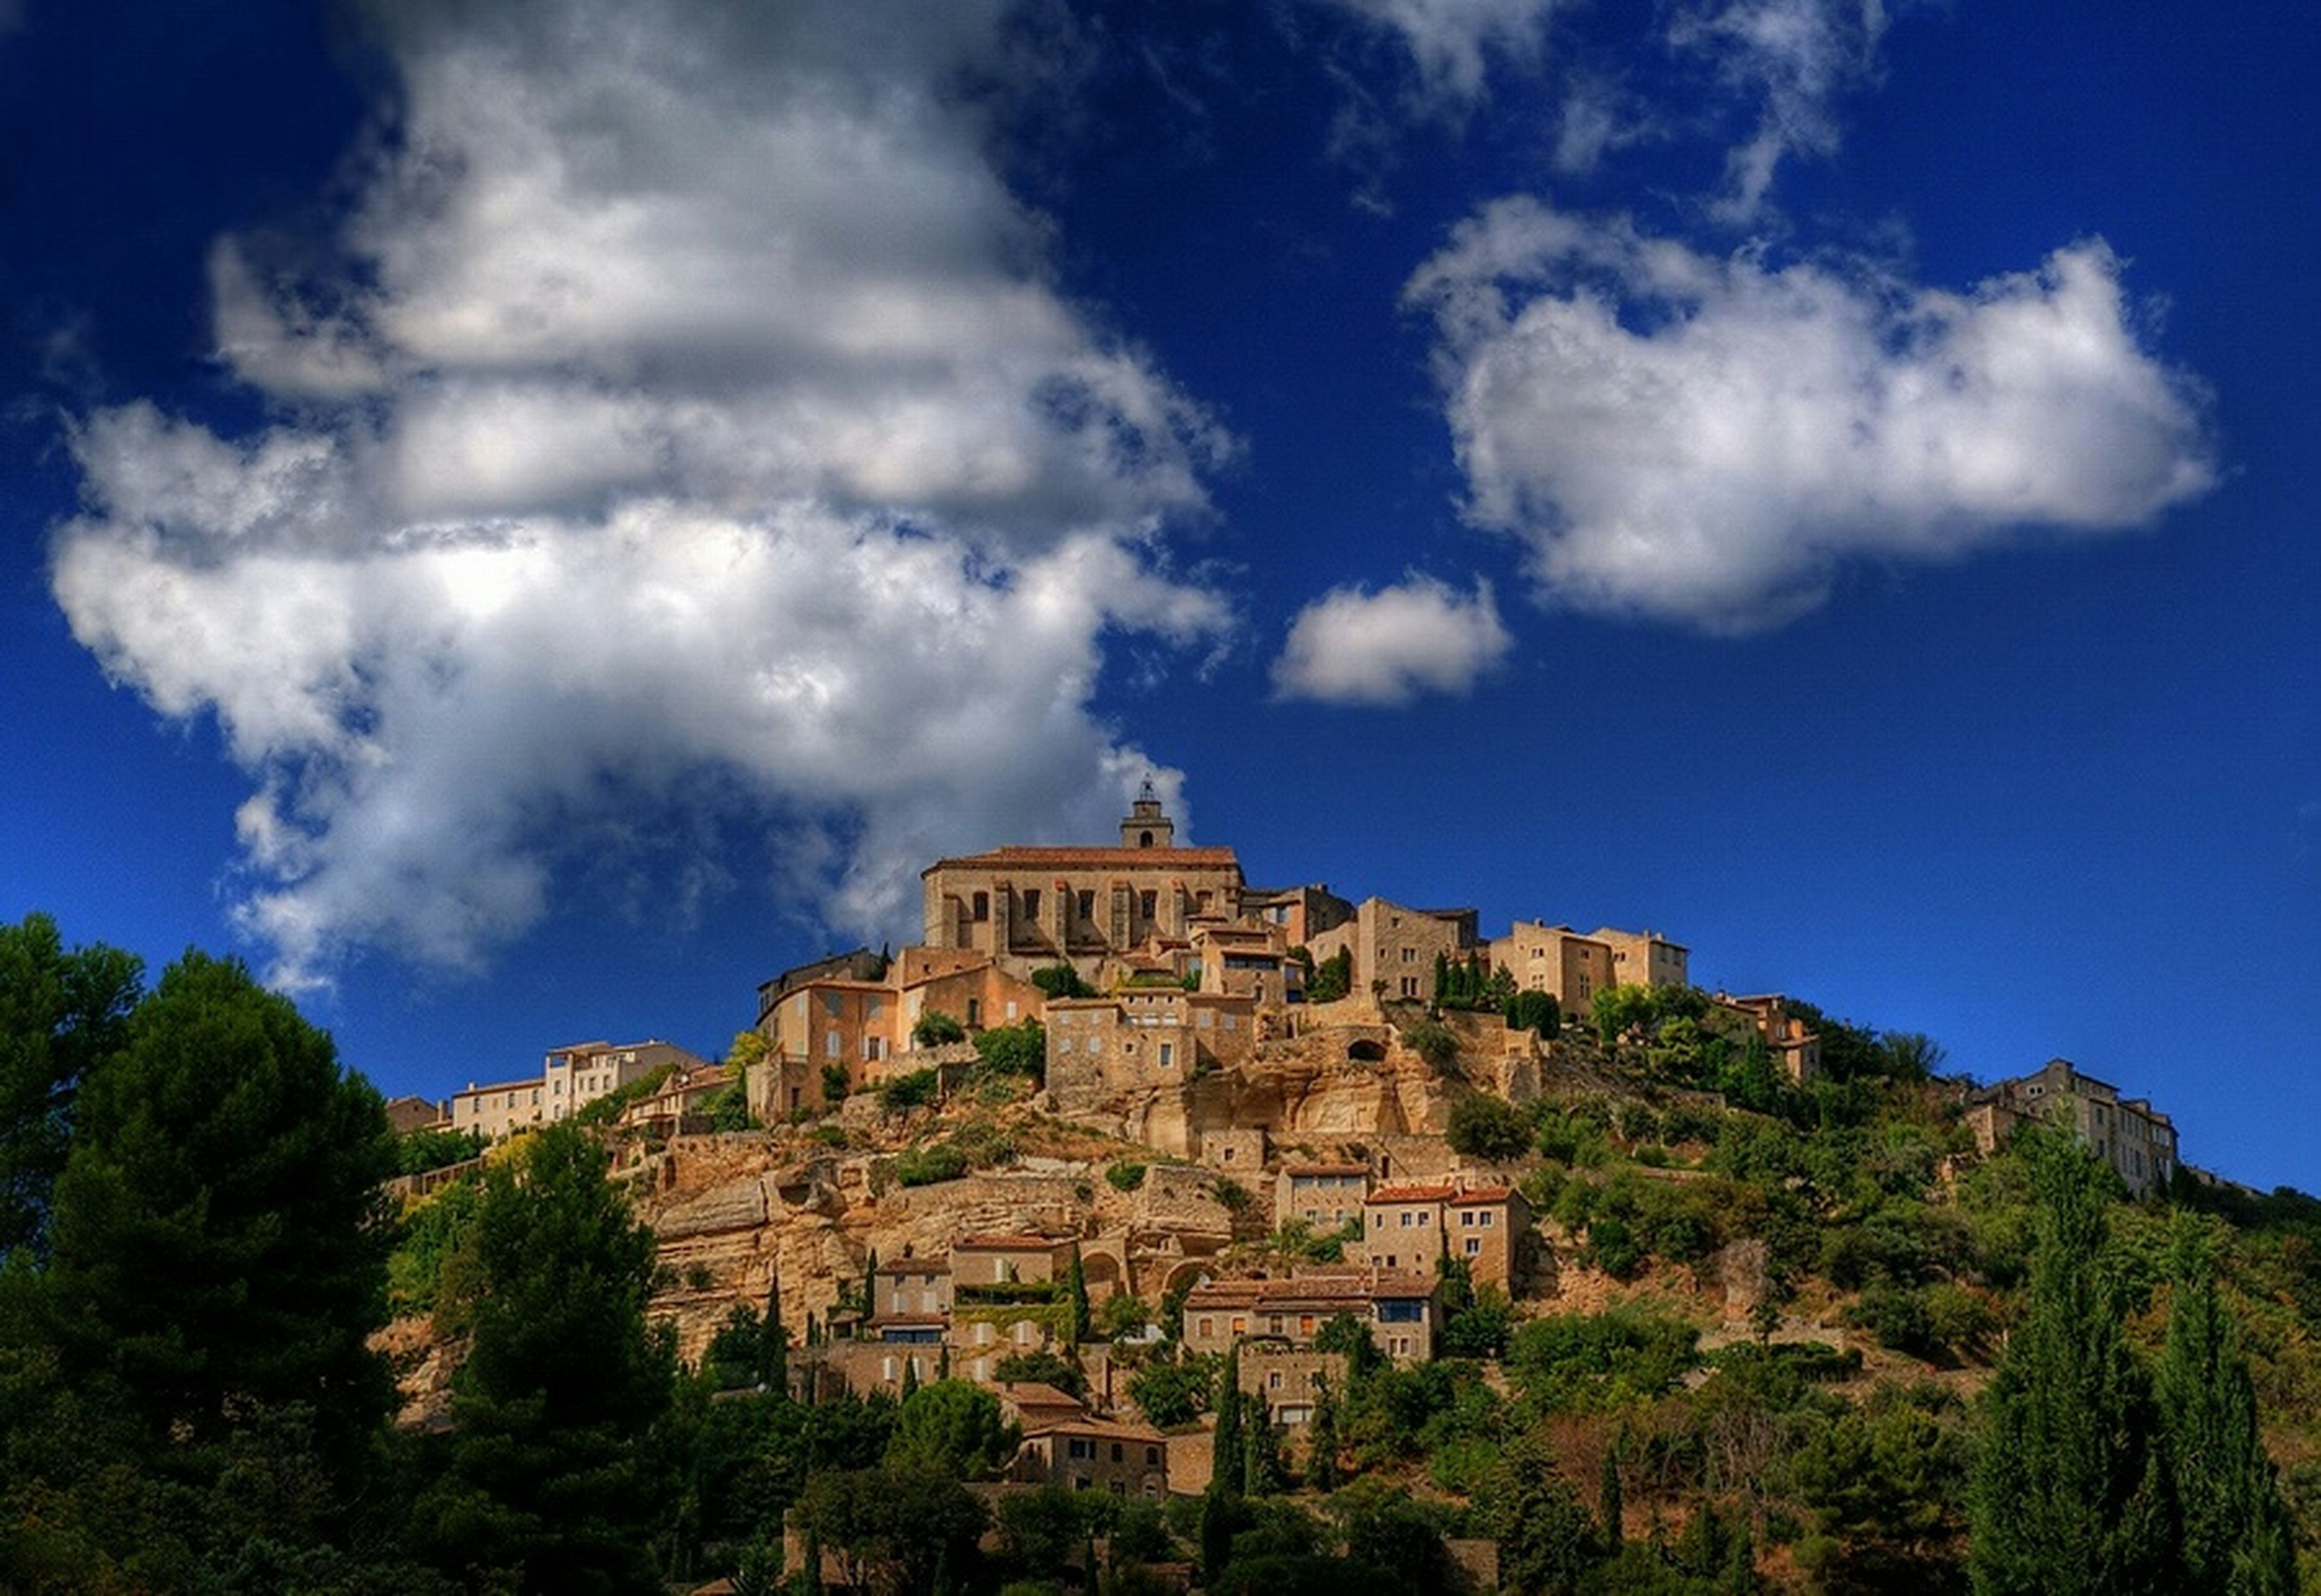 architecture, built structure, building exterior, sky, tree, history, low angle view, blue, cloud - sky, religion, place of worship, cloud, the past, spirituality, castle, old ruin, mountain, ancient, church